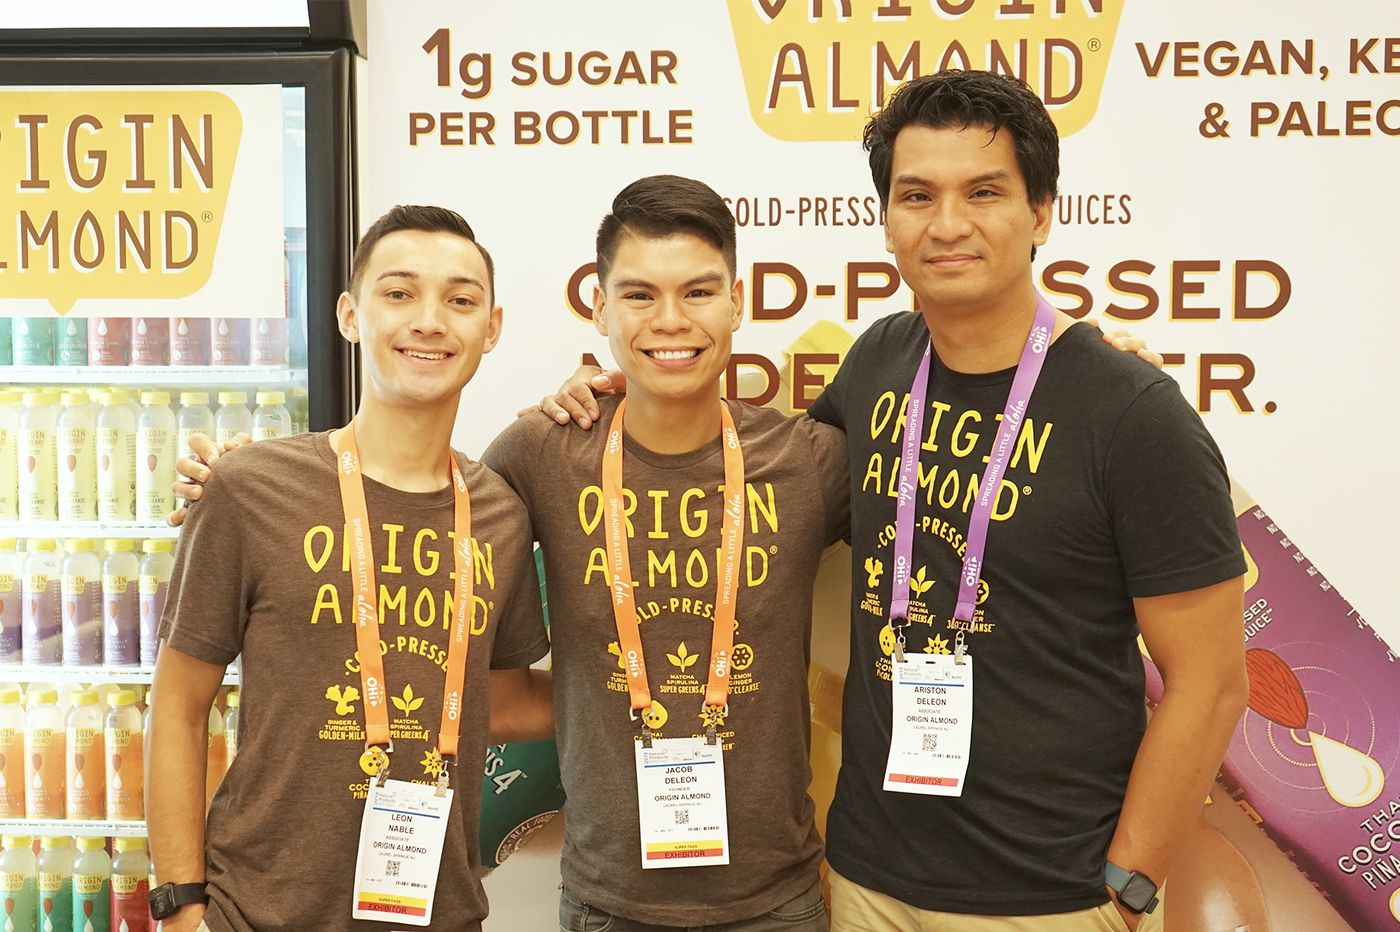 South Jersey almond beverage company gets juice from Kraft Heinz to make it big